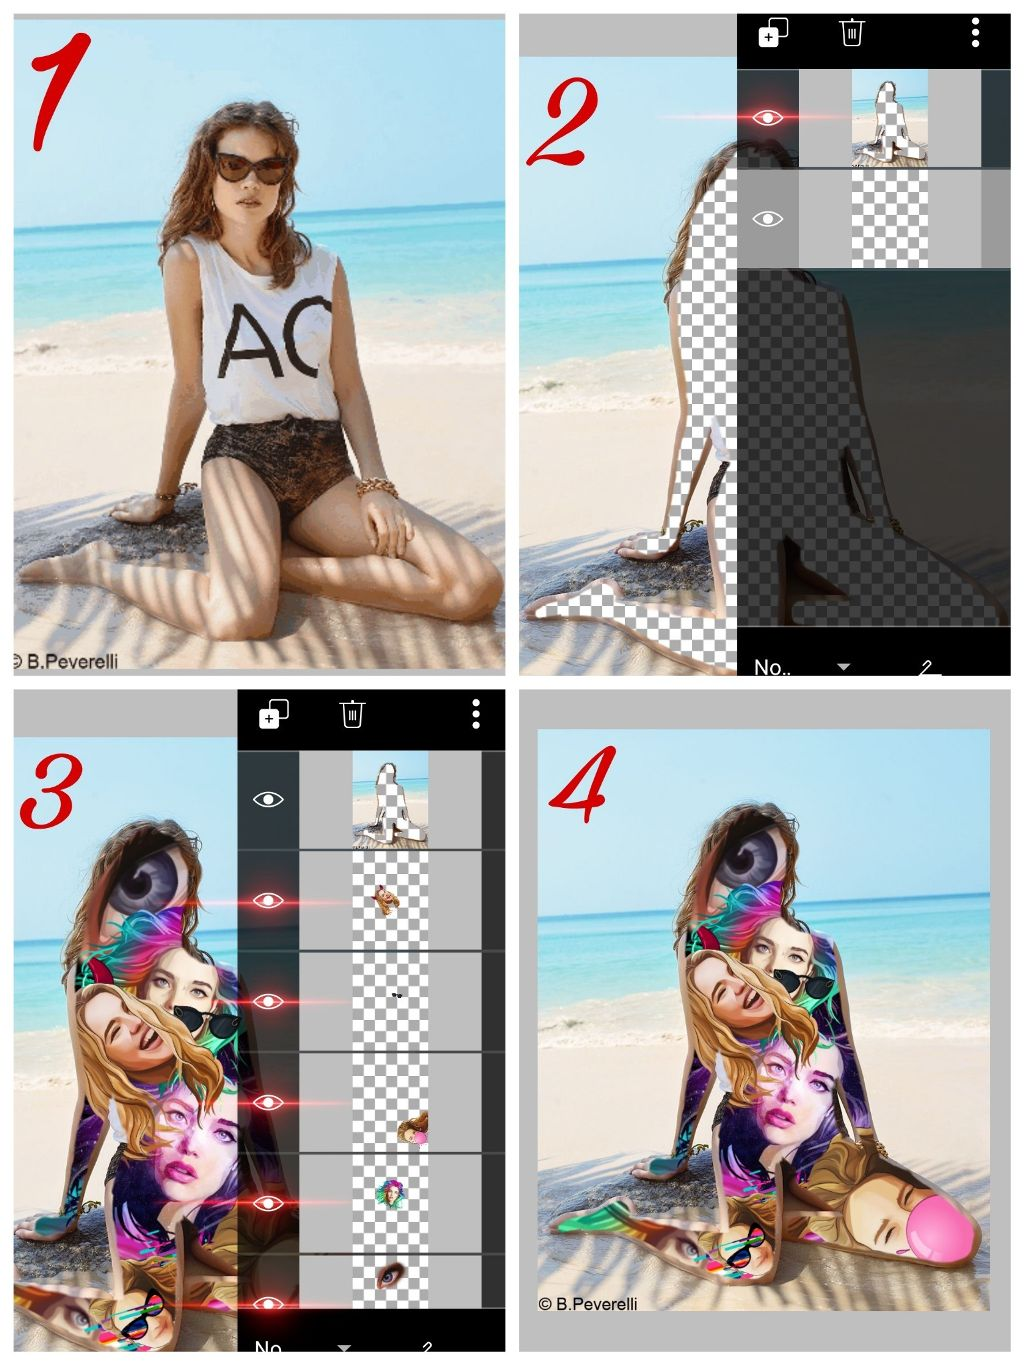 A cool and short #tutorial how I did my previous edit for @natasupernova   1. Take the picture you want and open draw 2. Take the eraser and erase the inside from       Your subject and leave a little bit of the side.  3. Then take the stickers or photos what ever    you want, and place them all in a separate layer so you can move them around wherever you want. Make sure you keep the original pic on the top layer.  4. Now you save and share your creations on picsart or first you can do a fx on it.  5. Just have fun with It and leave a comment if you used my tutorial.   #madewithpicsart #picsart #editedbyme #edited #editstepbystep #clipart #picsartvip #tutorial #quicktip #quicktips